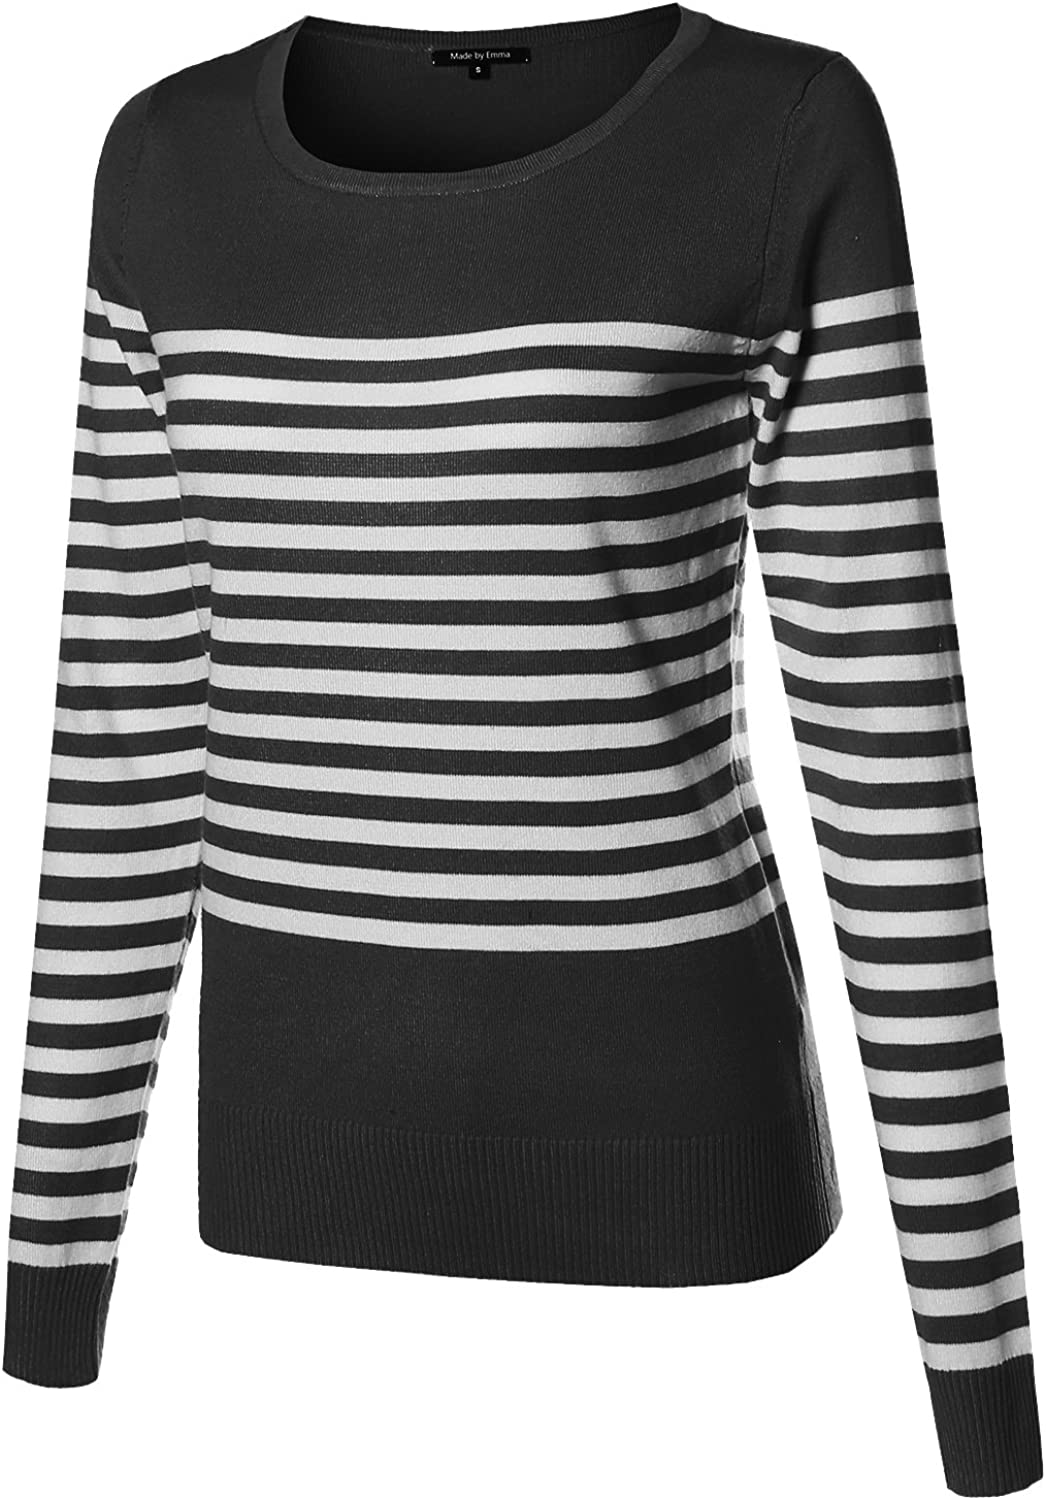 Made by Emma Women's Round Neck Striped Pullover Long Sleeve Top